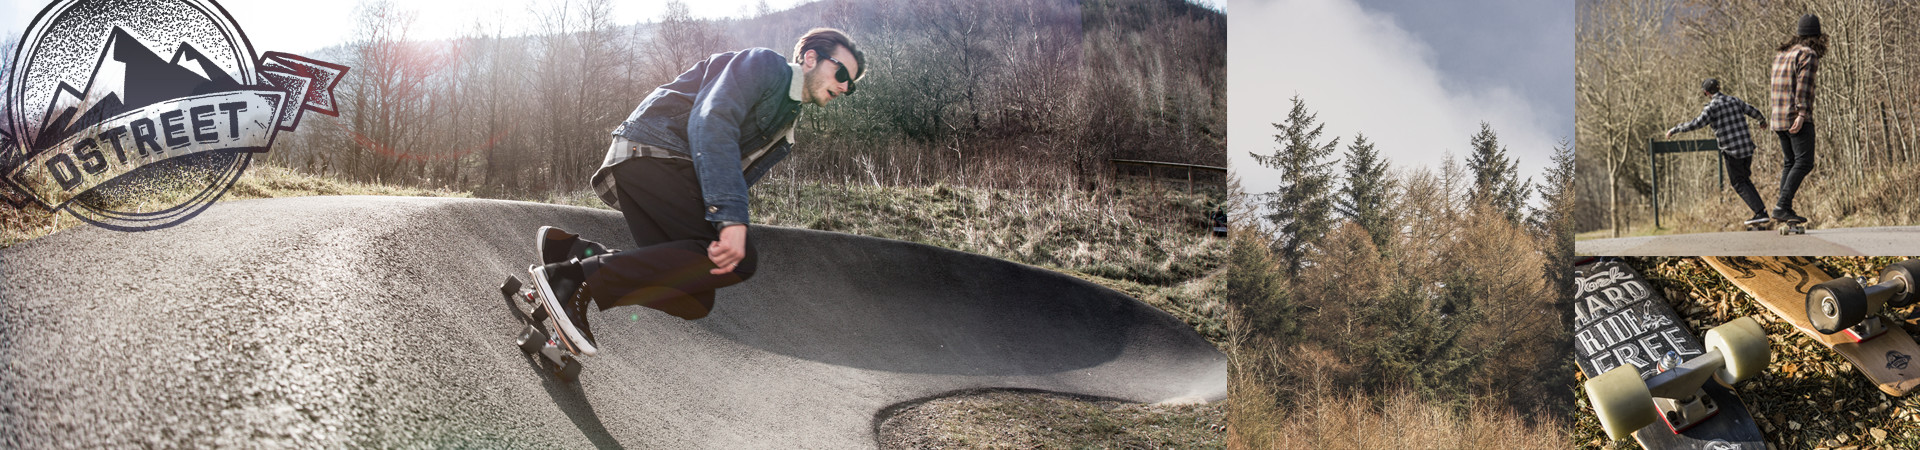 D Street Wooden Skateboard Cruisers - available to buy all over Europe now